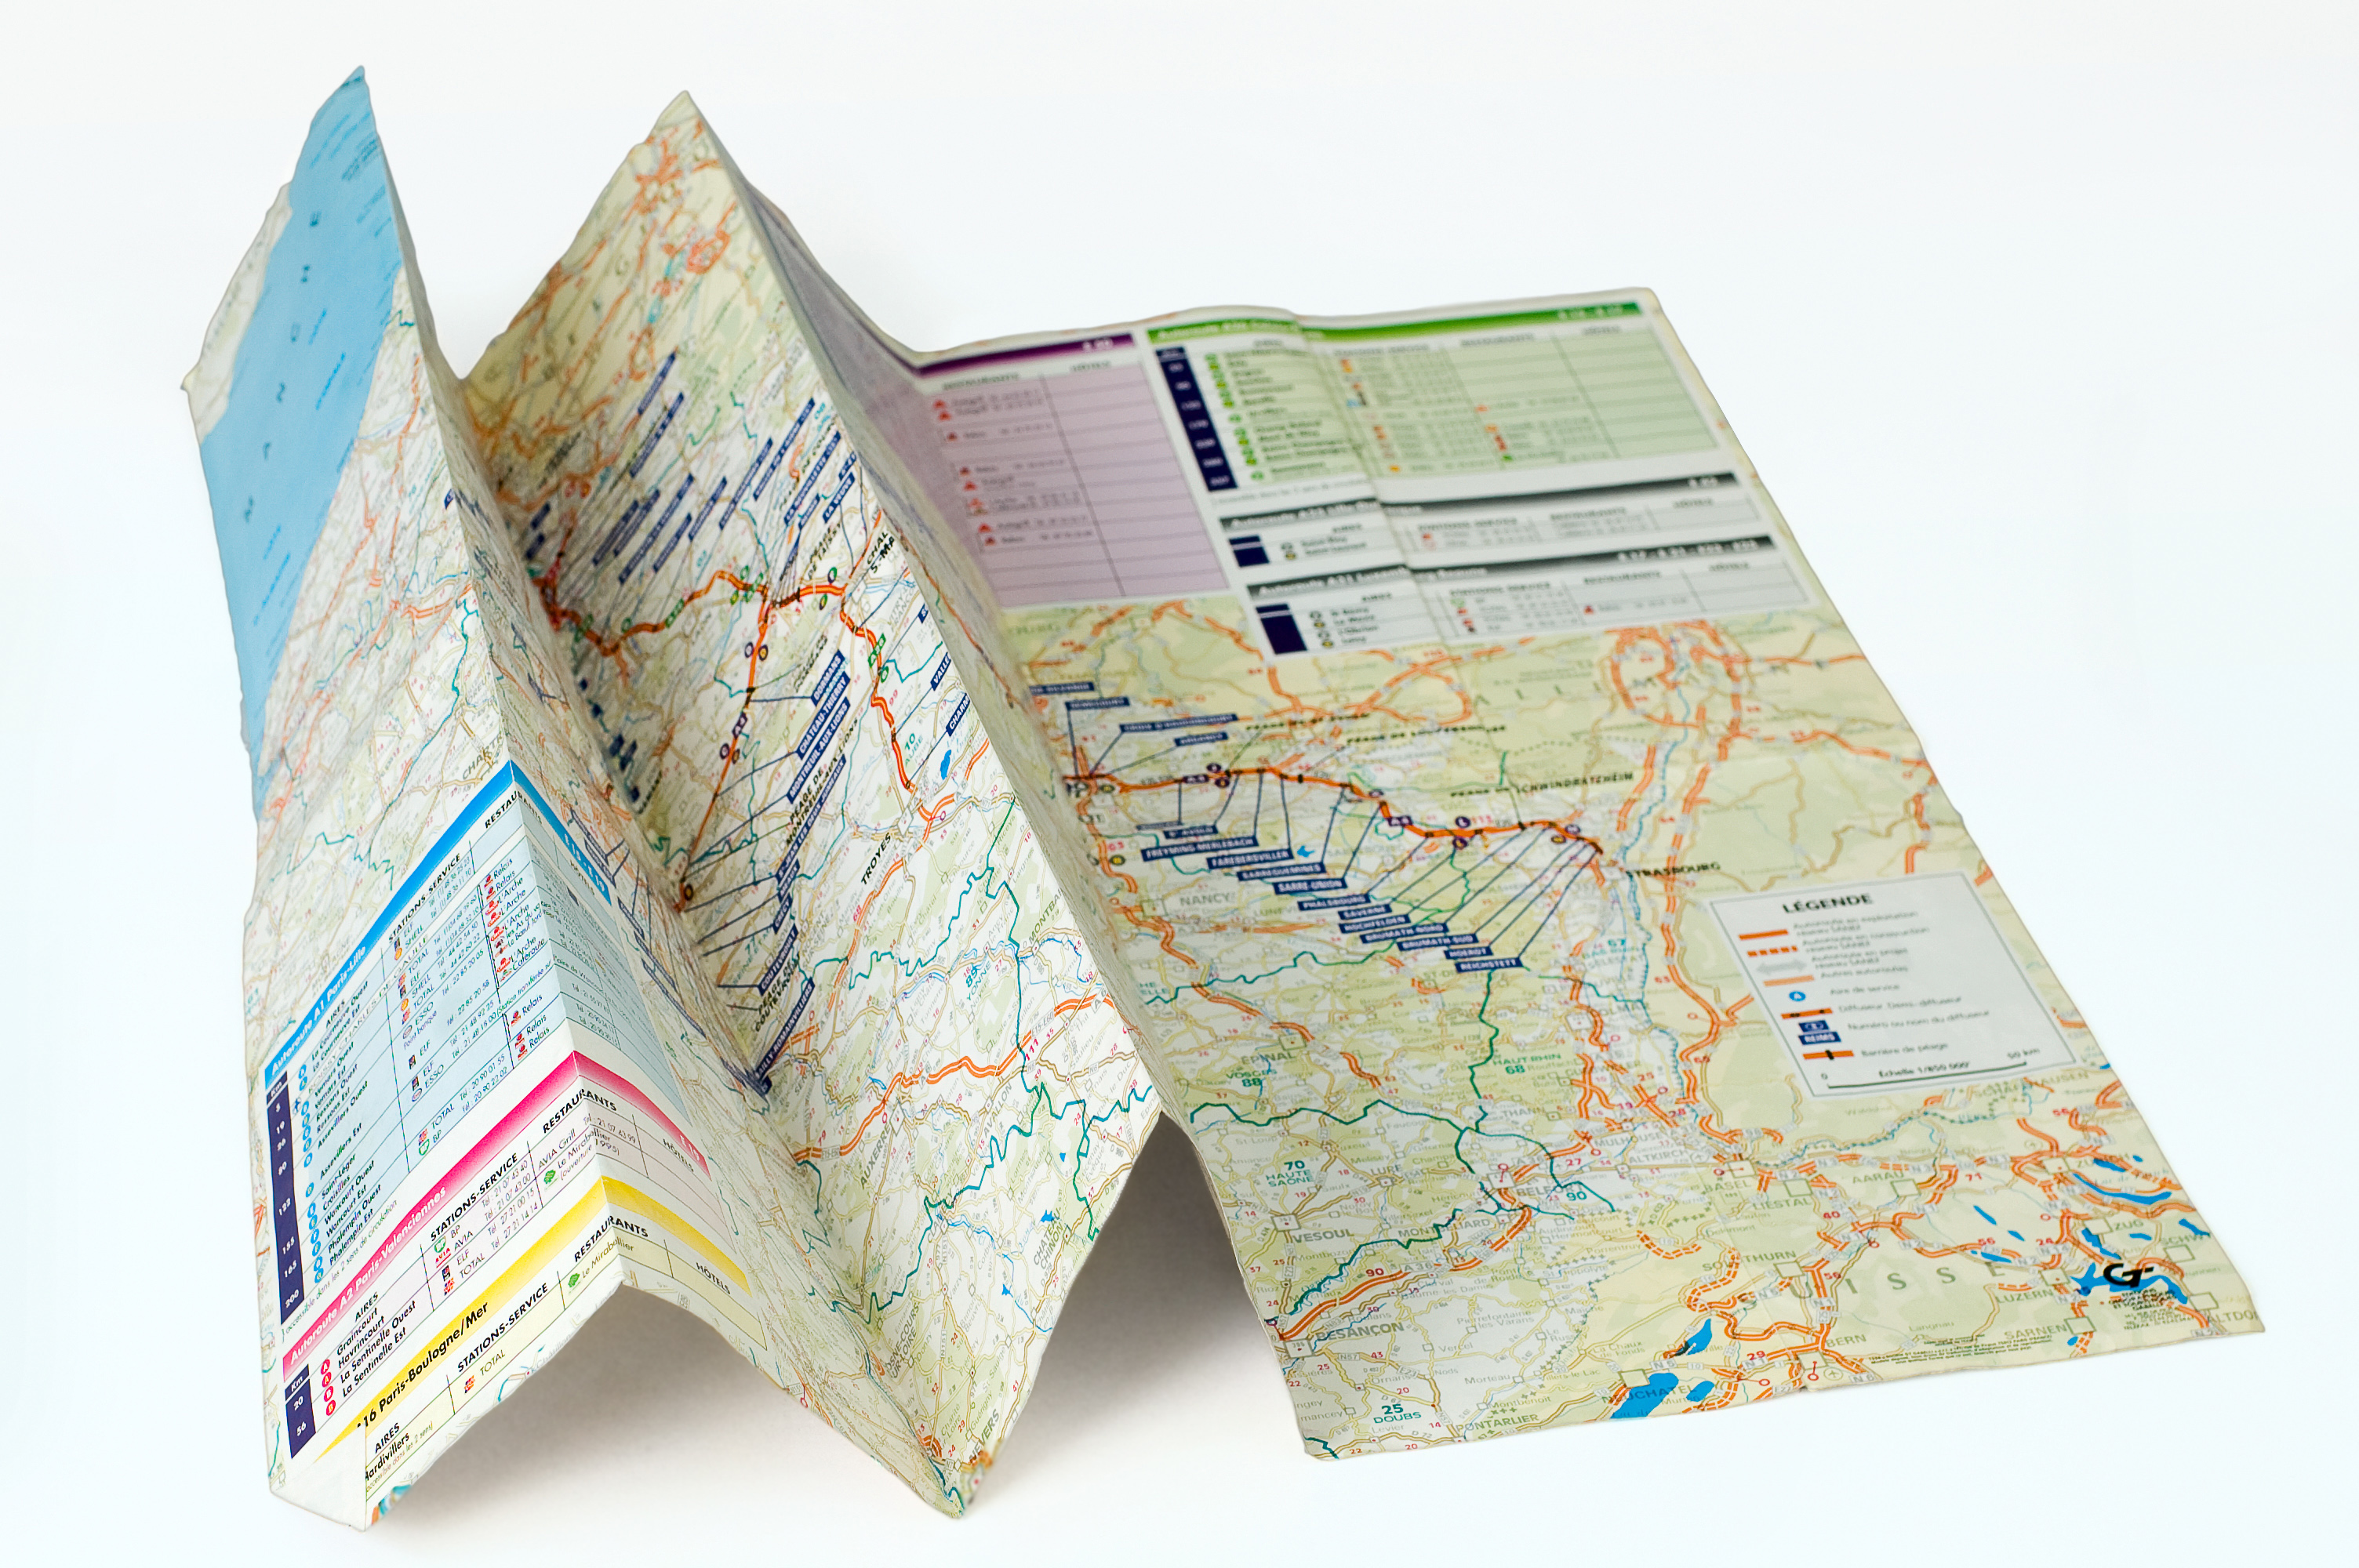 Folded road map clipart png library download Folded road map clipart - ClipartFest png library download